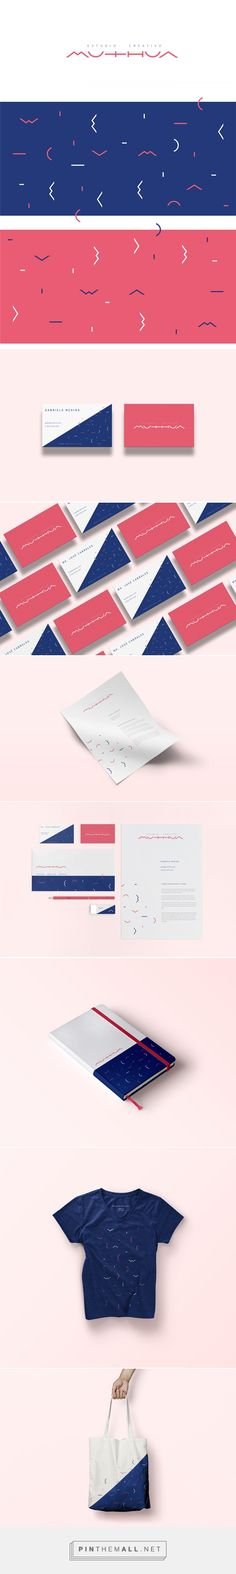 Muthua Estudio Creativo Branding by Elemasele on Behance